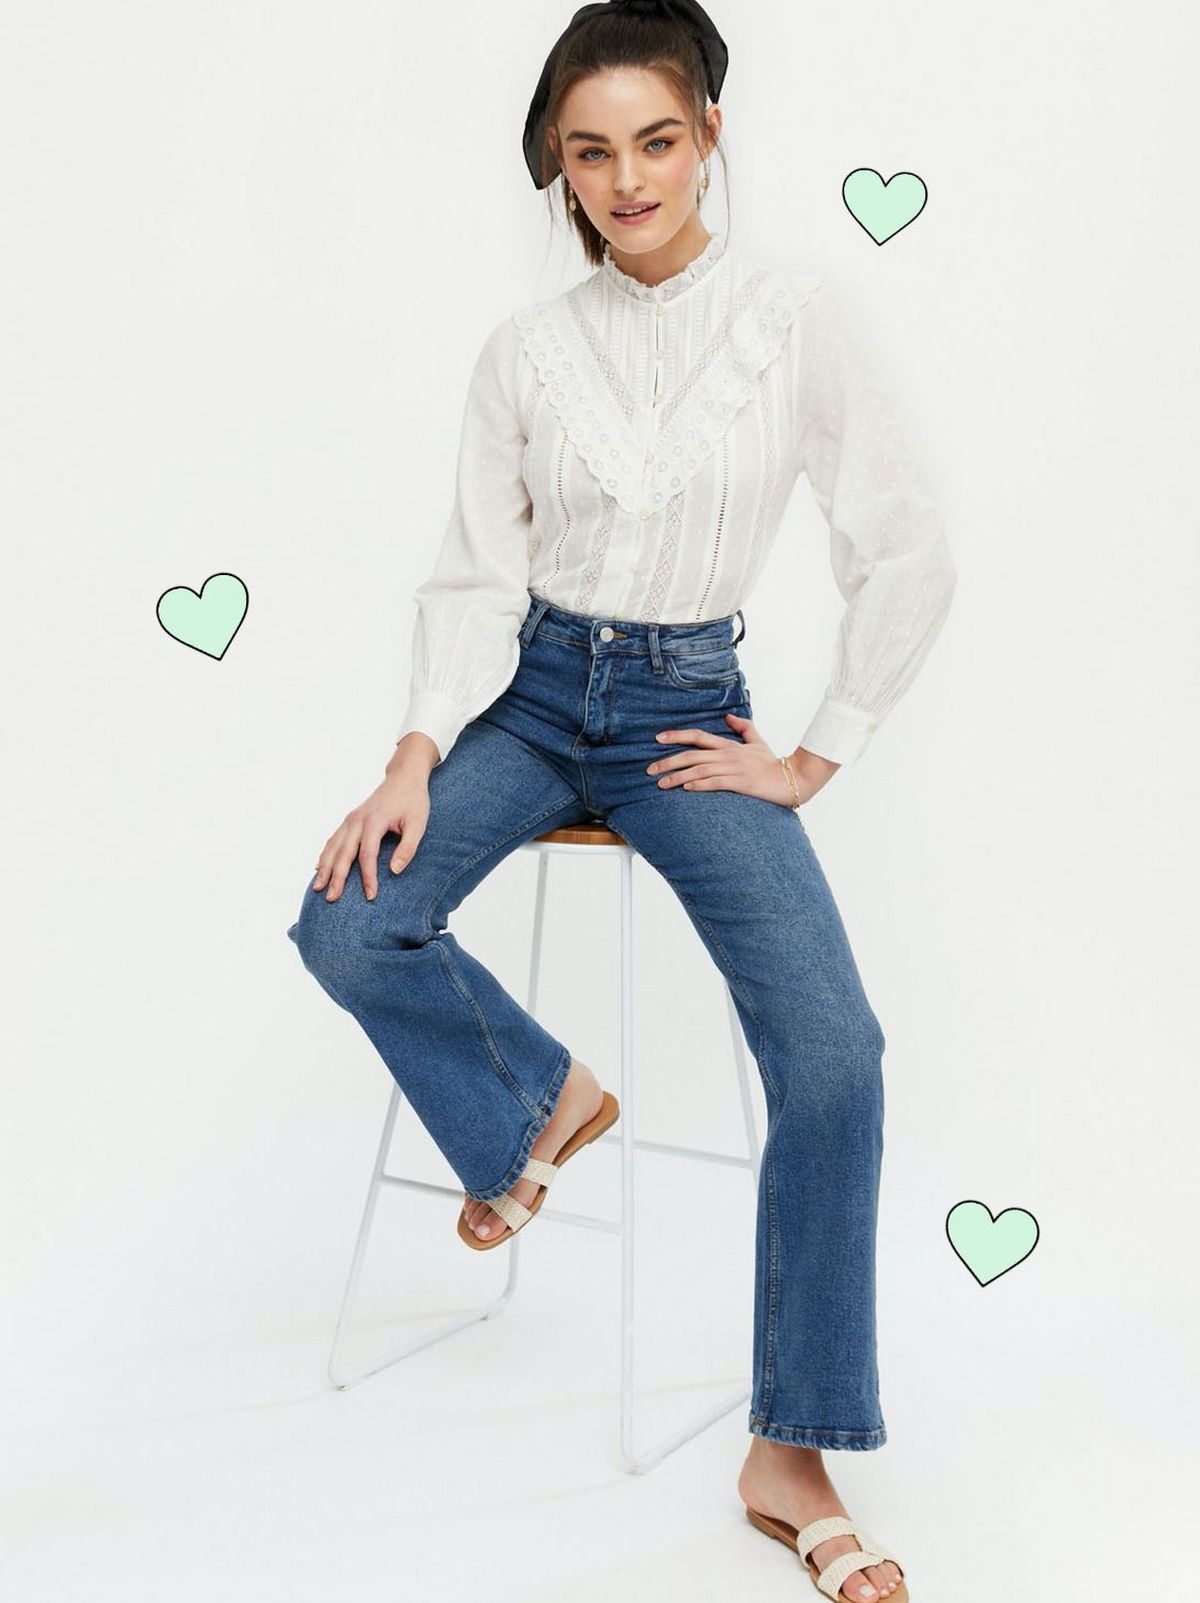 Woman wearing an off white high neck shirt, blue jeans and sliders